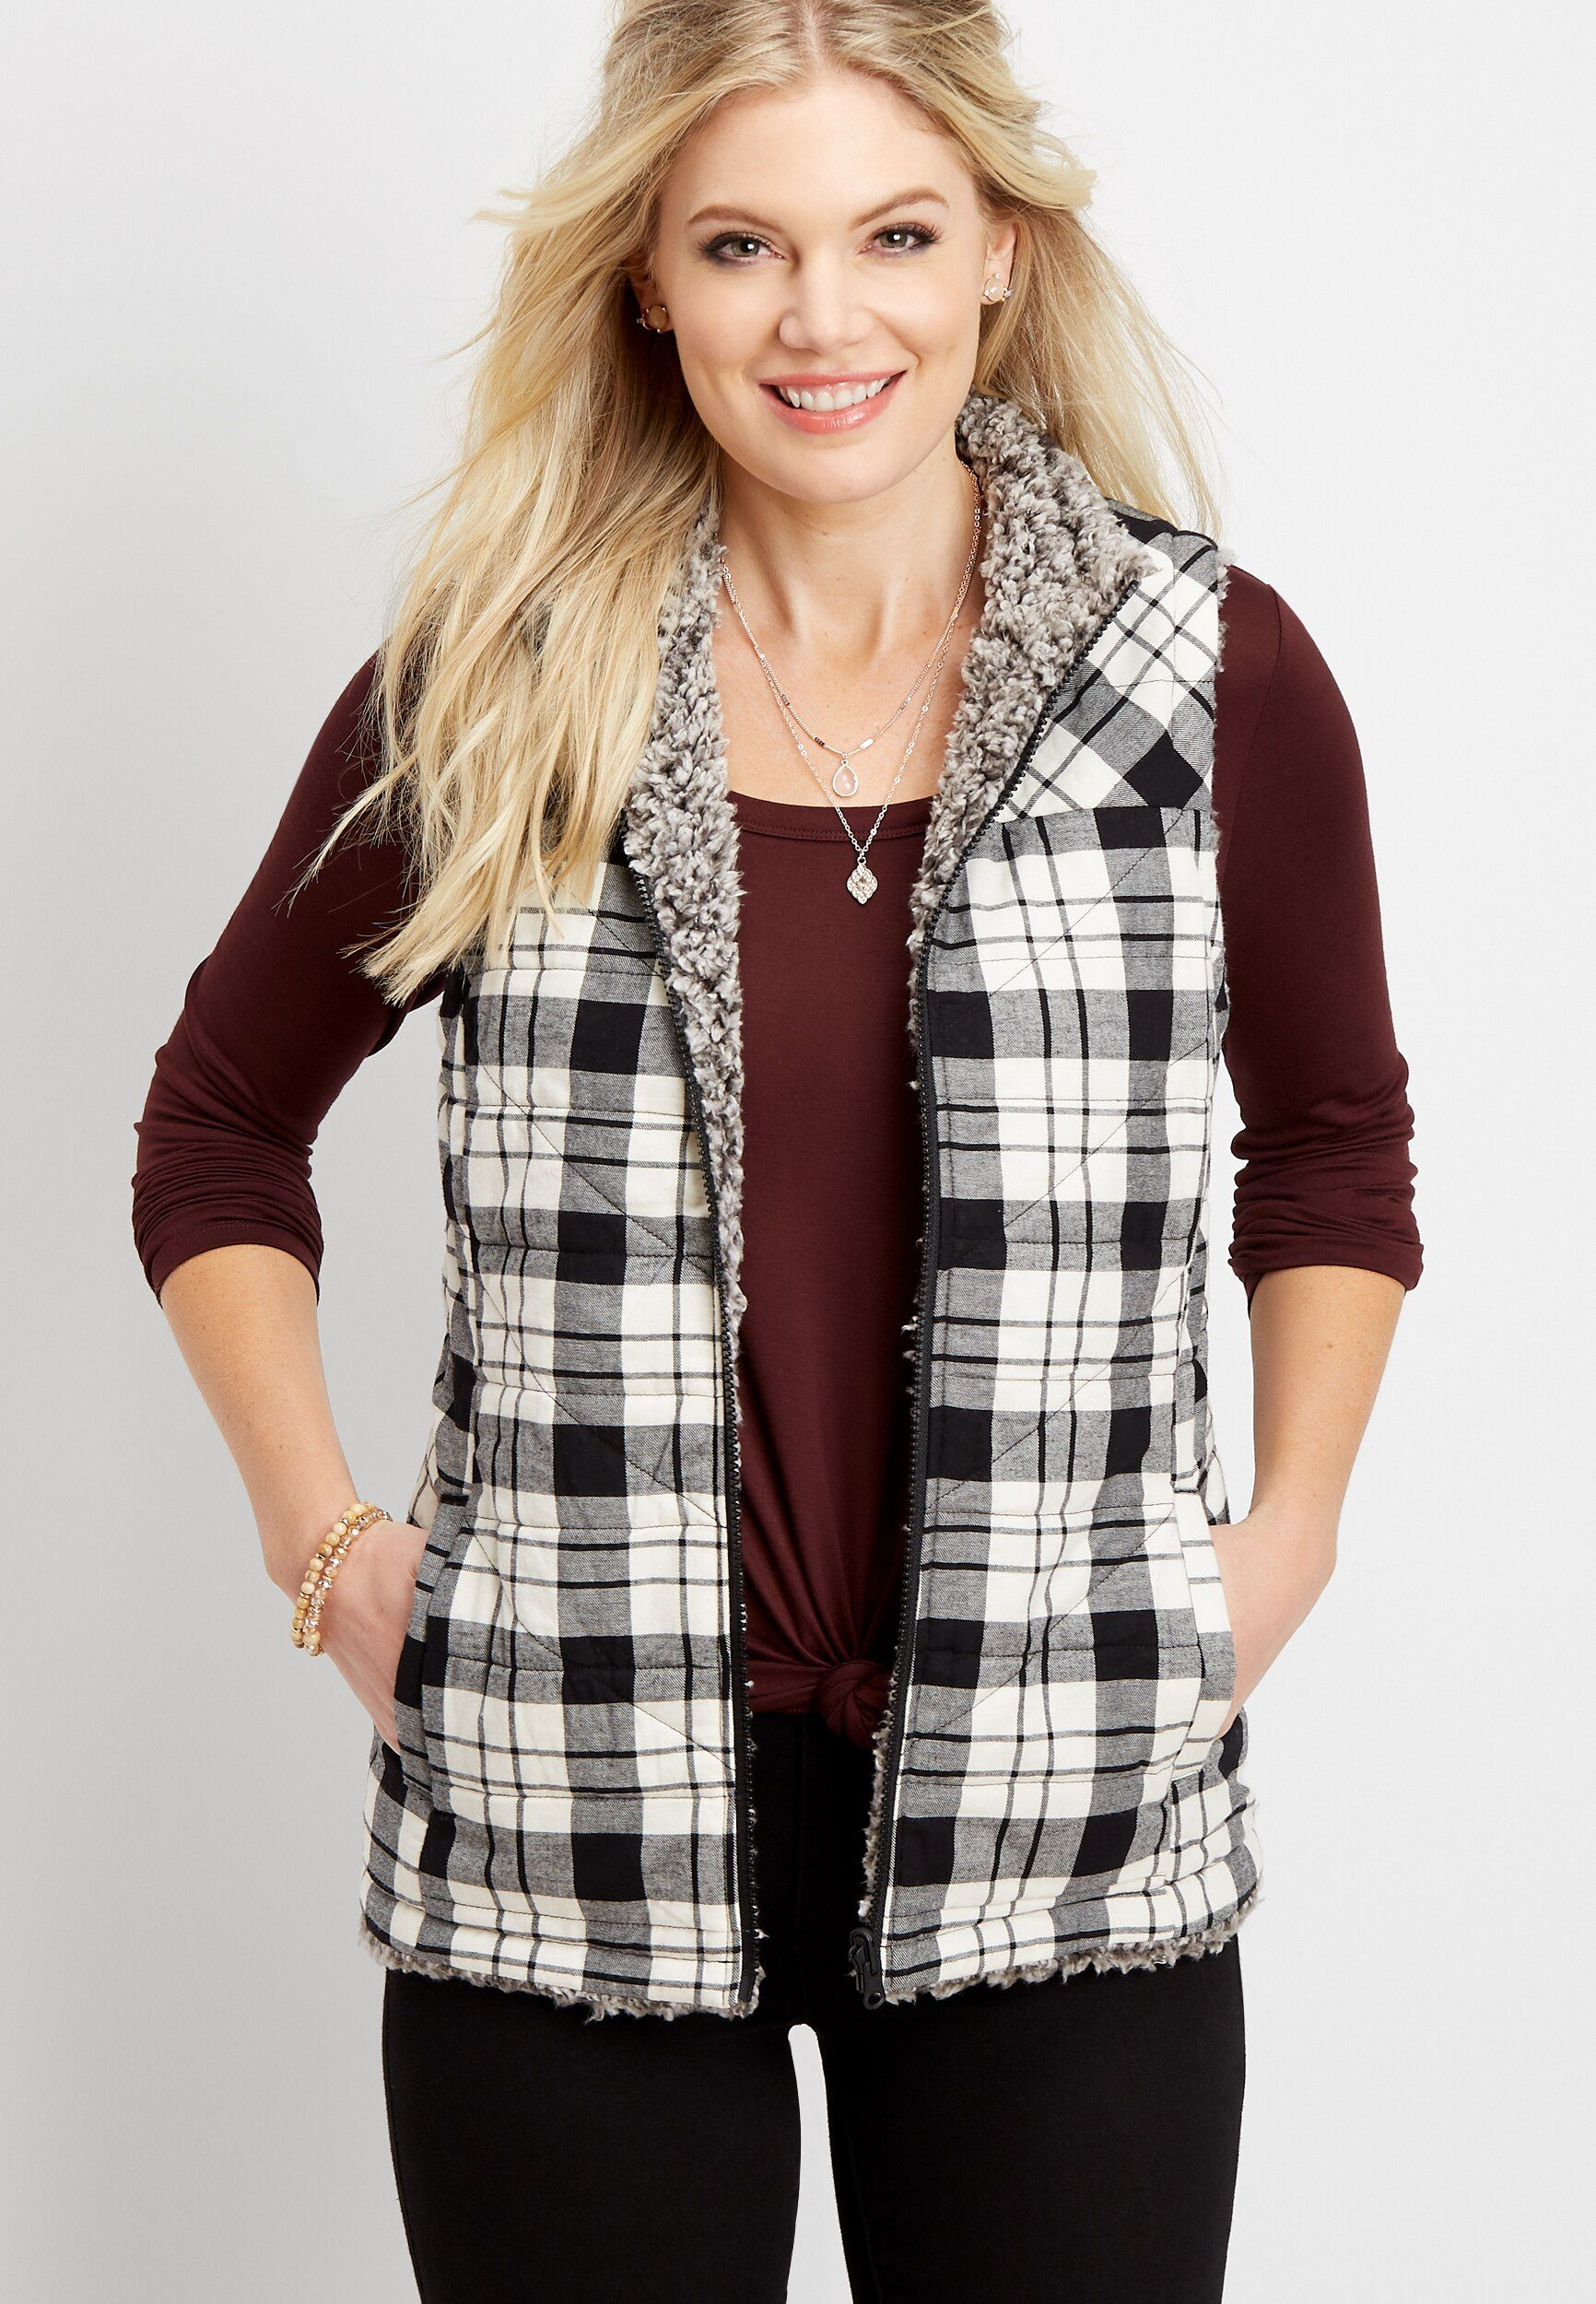 maurices Womens Plus Size Plaid Puffer Vest